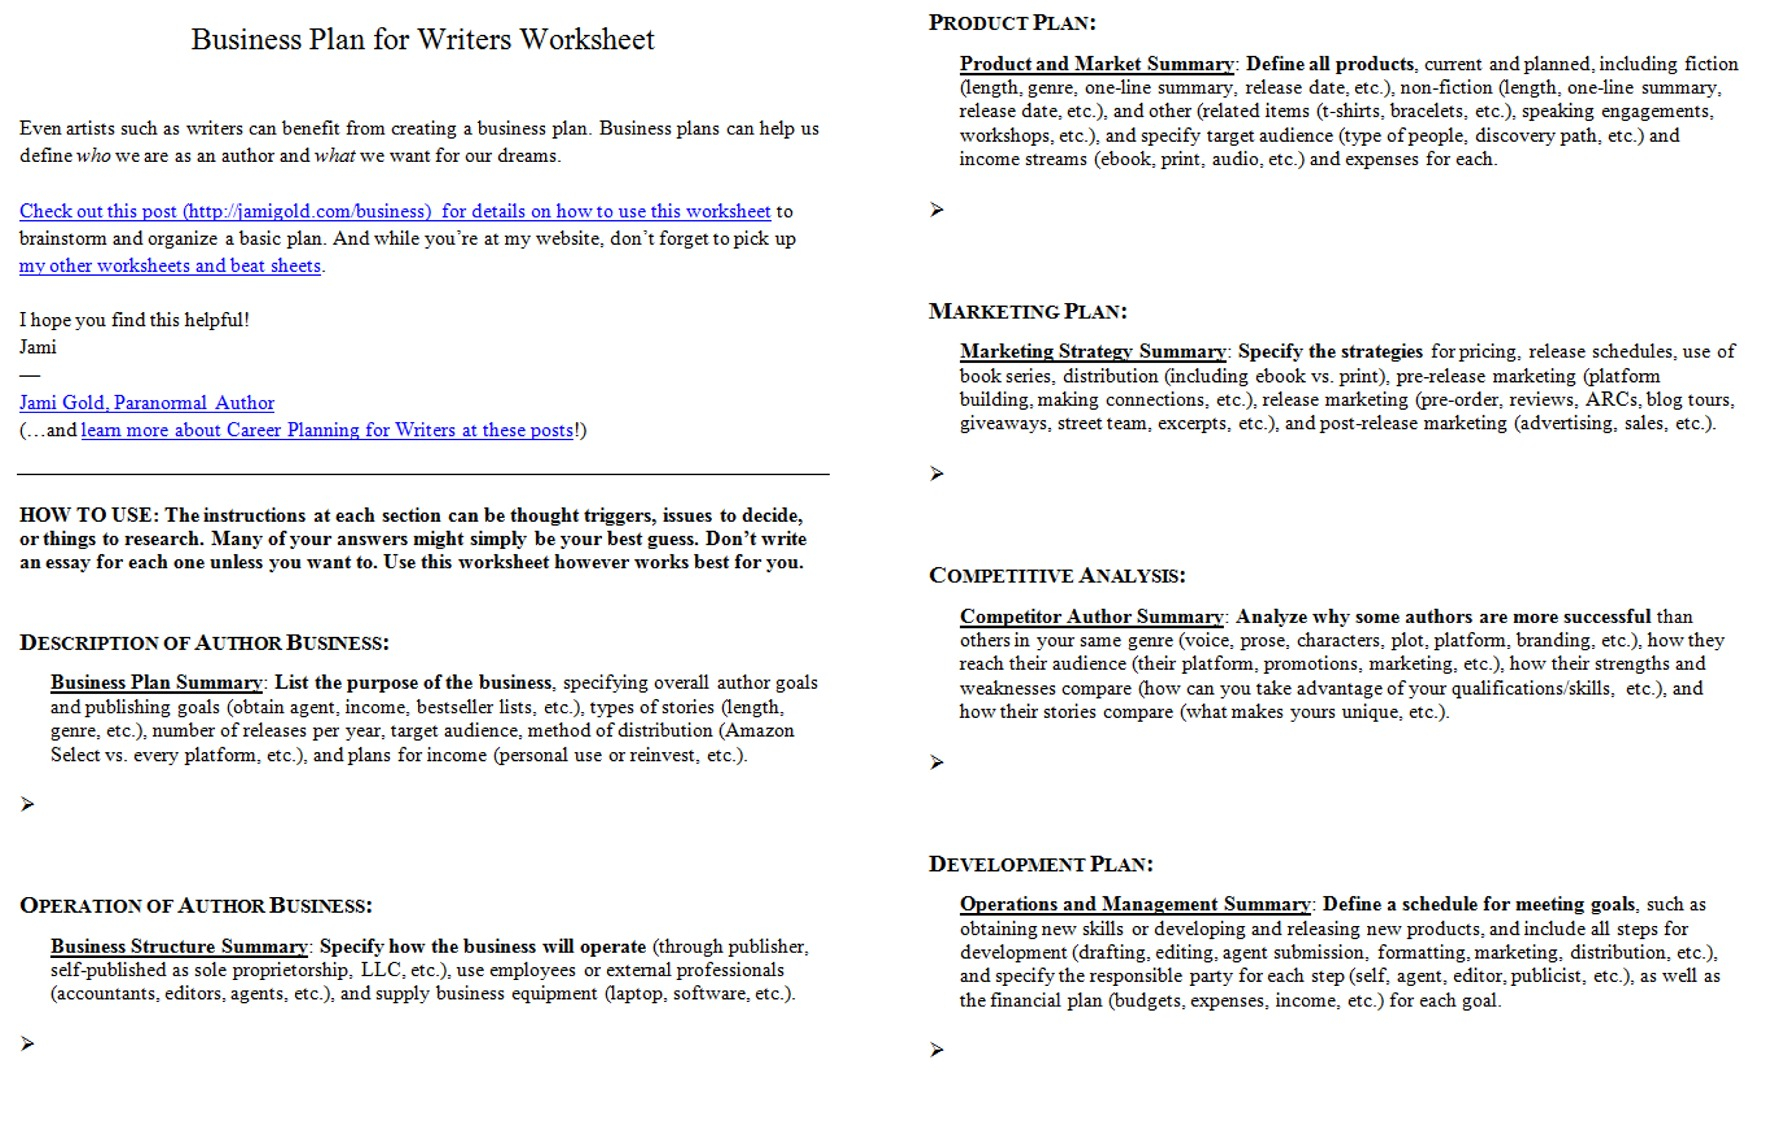 Proatmealus  Pleasing Worksheets For Writers  Jami Gold Paranormal Author With Extraordinary Screen Shot Of Both Pages Of The Business Plan For Writers Worksheet With Adorable Copy A Worksheet To Another Workbook Also French Verb Worksheets In Addition Using Commas Correctly Worksheet And Algebra  Puzzle Worksheets As Well As Missing Angles In Quadrilaterals Worksheet Additionally Division With Fractions Worksheets From Jamigoldcom With Proatmealus  Extraordinary Worksheets For Writers  Jami Gold Paranormal Author With Adorable Screen Shot Of Both Pages Of The Business Plan For Writers Worksheet And Pleasing Copy A Worksheet To Another Workbook Also French Verb Worksheets In Addition Using Commas Correctly Worksheet From Jamigoldcom